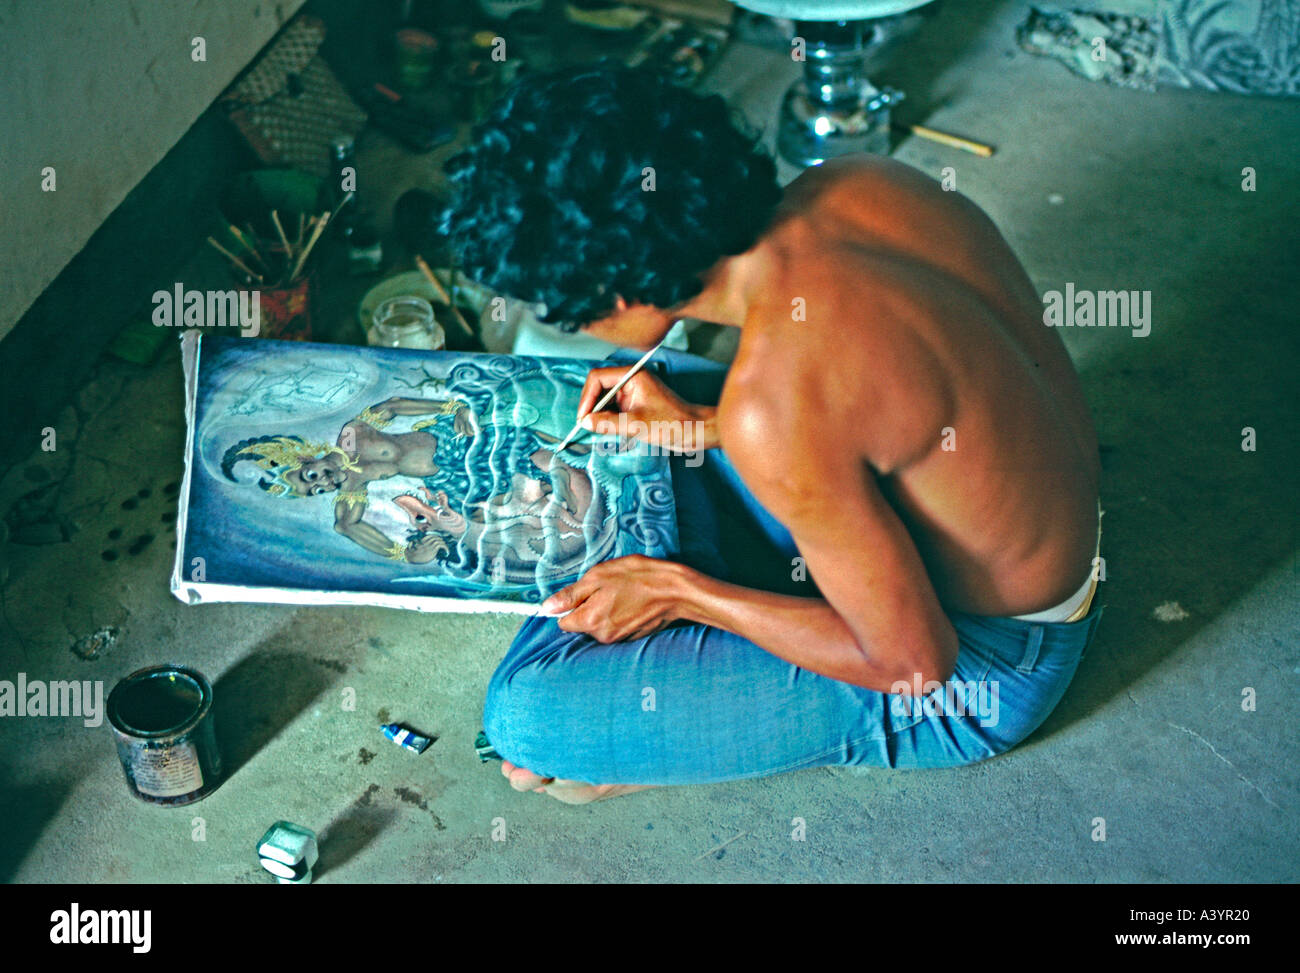 A Balinese artist in the artists enclave of Ubud works on a painting in traditional Balinese style - Stock Image